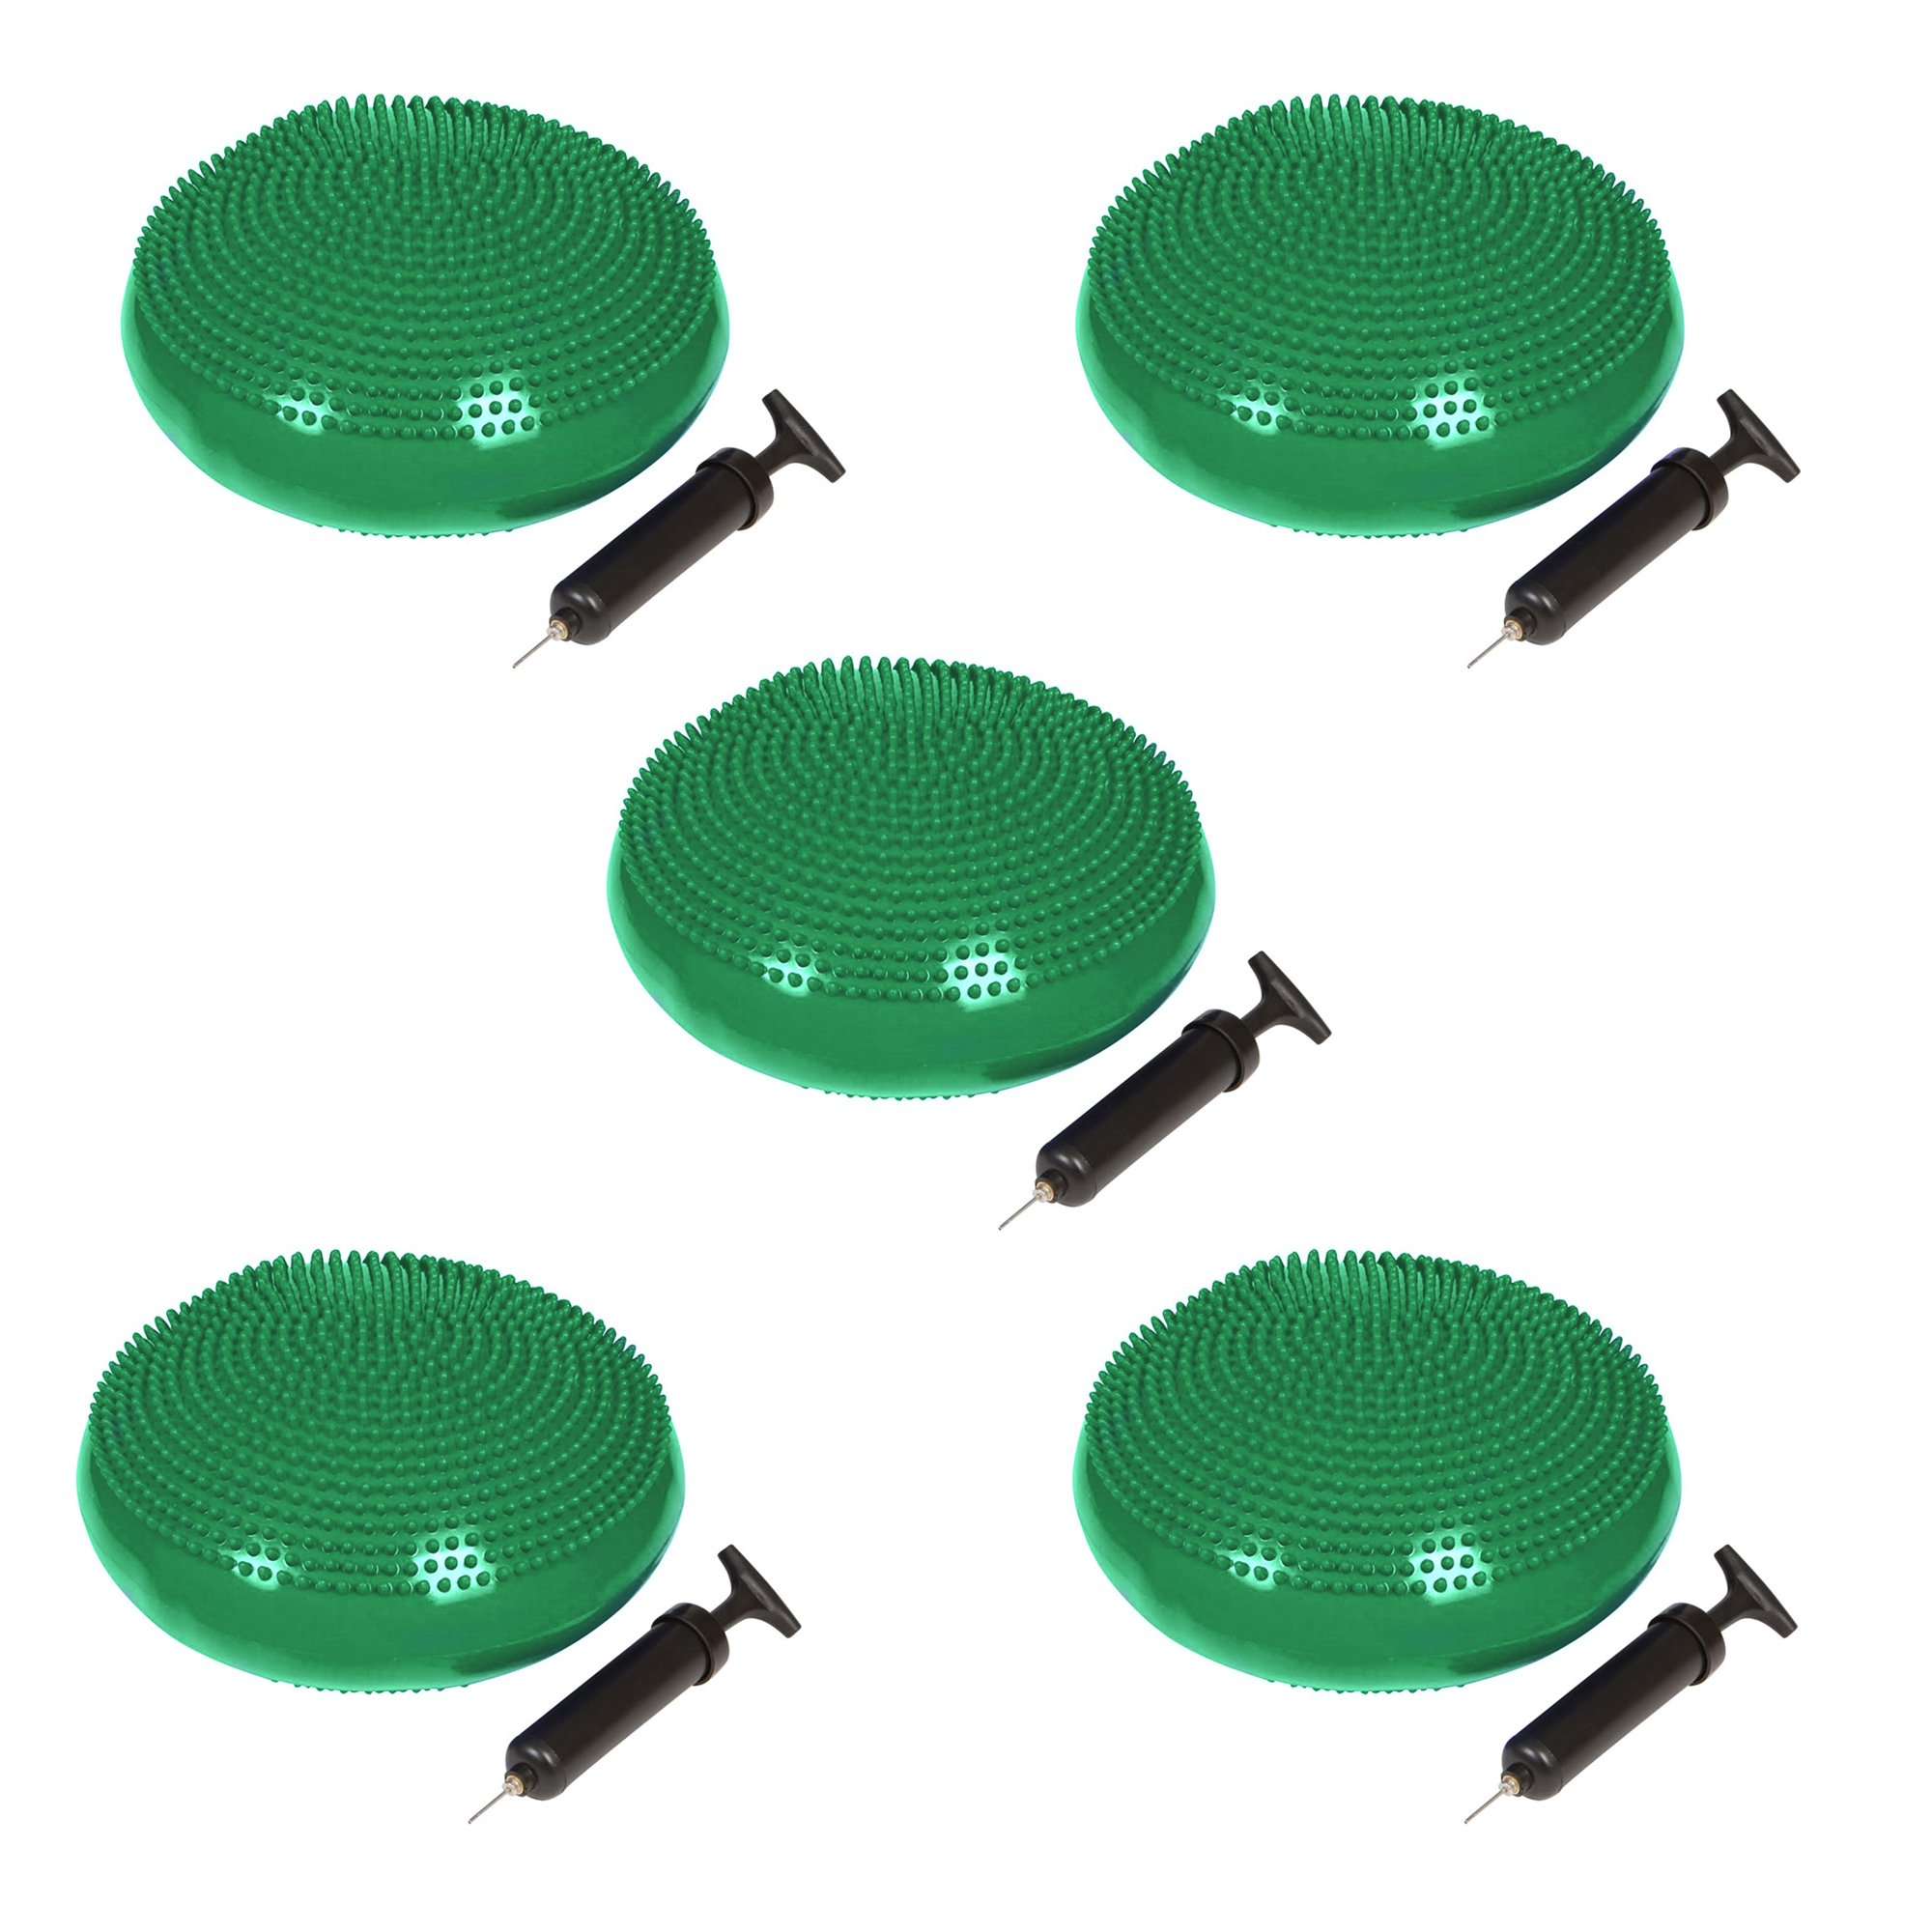 Trademark Innovations PVC Fitness and Balance Disc - 13-Inch Diameter - Set of 5 - (Green)